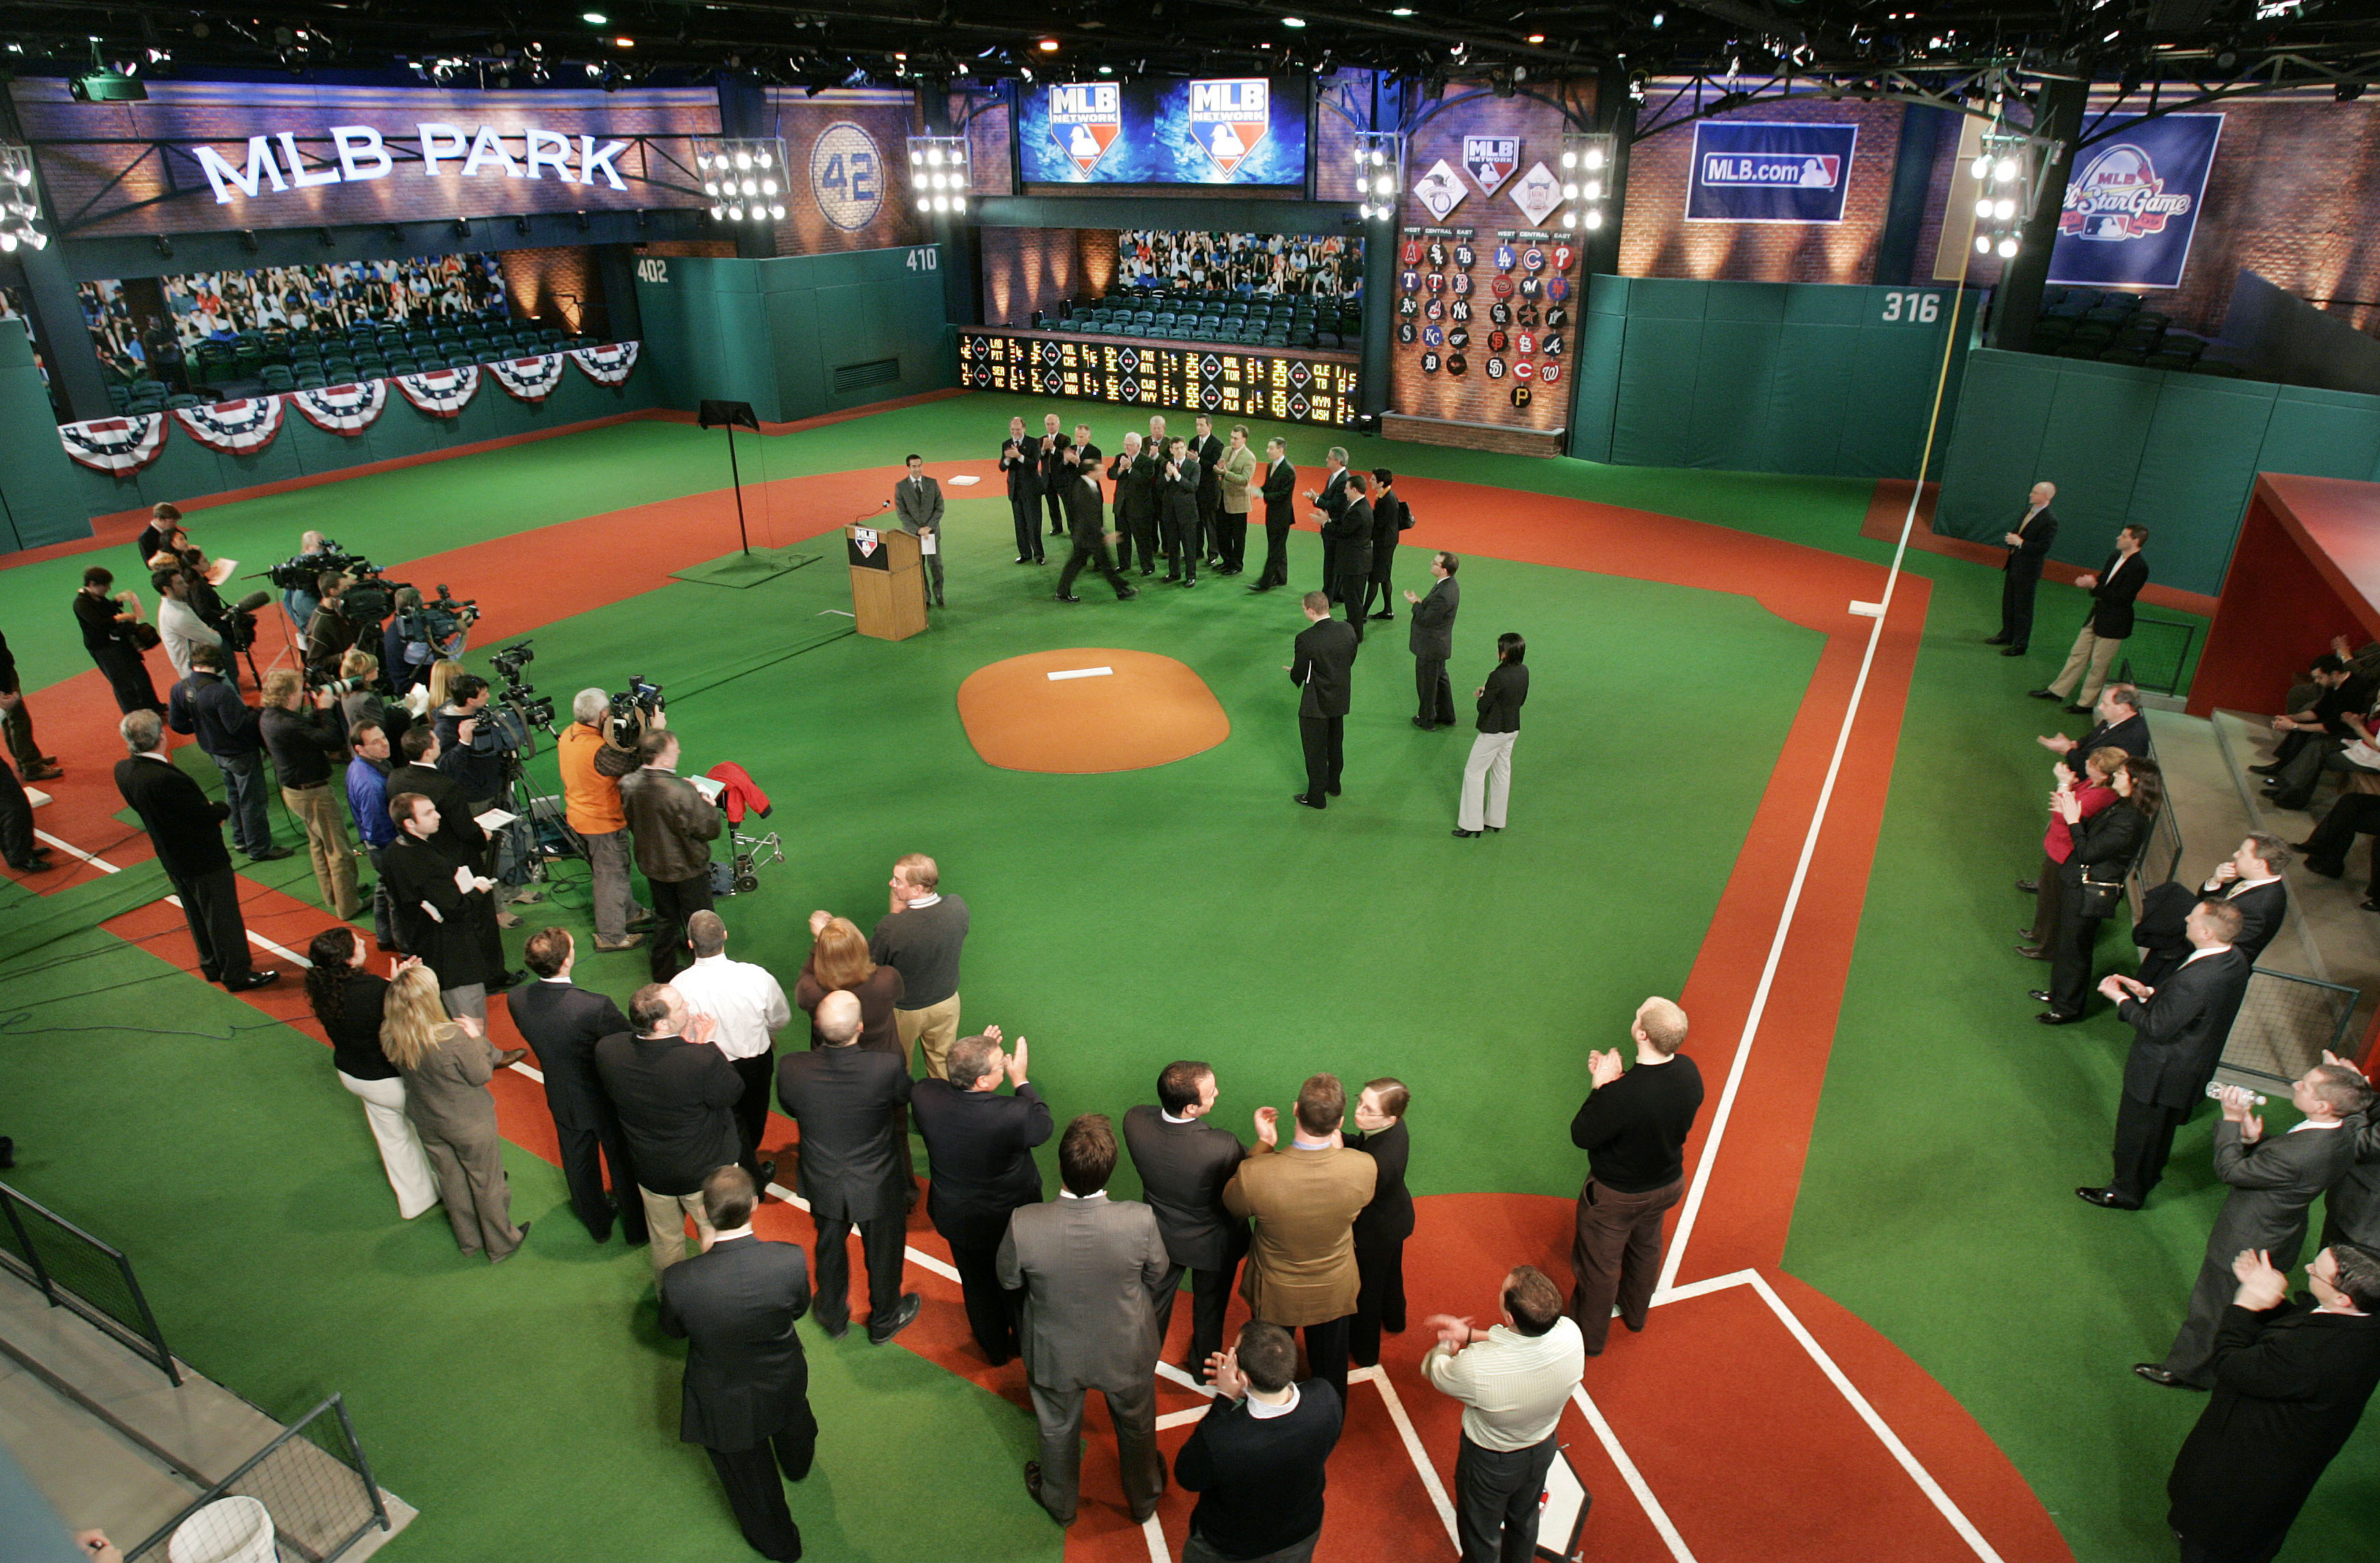 New Jersey Gov. Corzine stands in a group with Major League Baseball officials just beyond a pitchers' mound at the new MLB Network Studios Wednesday, Feb. 4, 2009, in Secaucus, N.J., during the indoor dedication of a street outside the studios of basebal